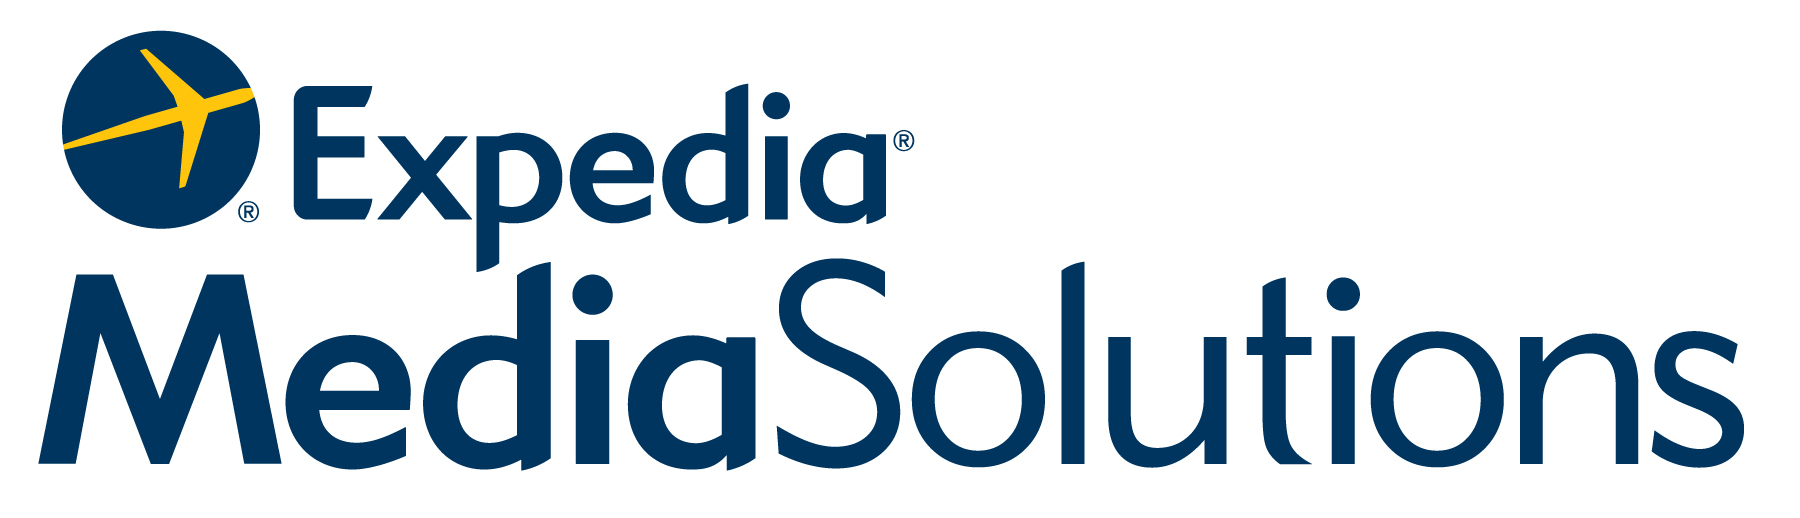 Expedia Media Solutions Three Ways To Influence The American